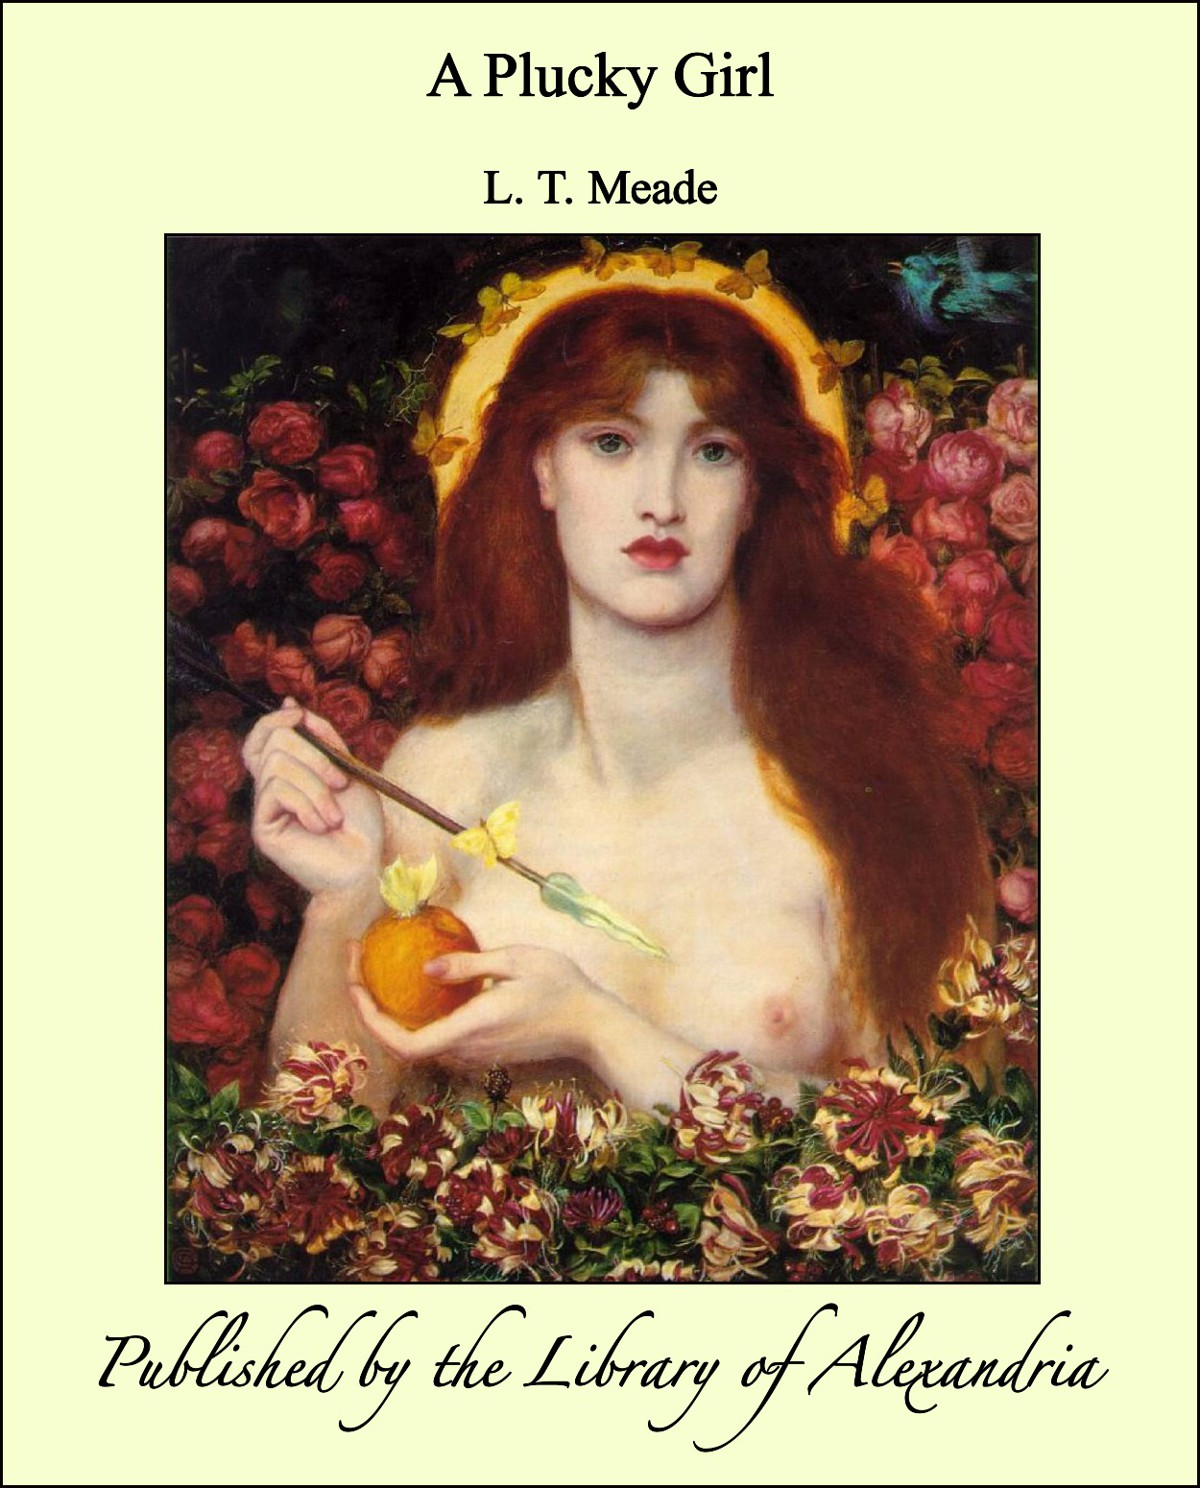 L. T. Meade - A Plucky Girl